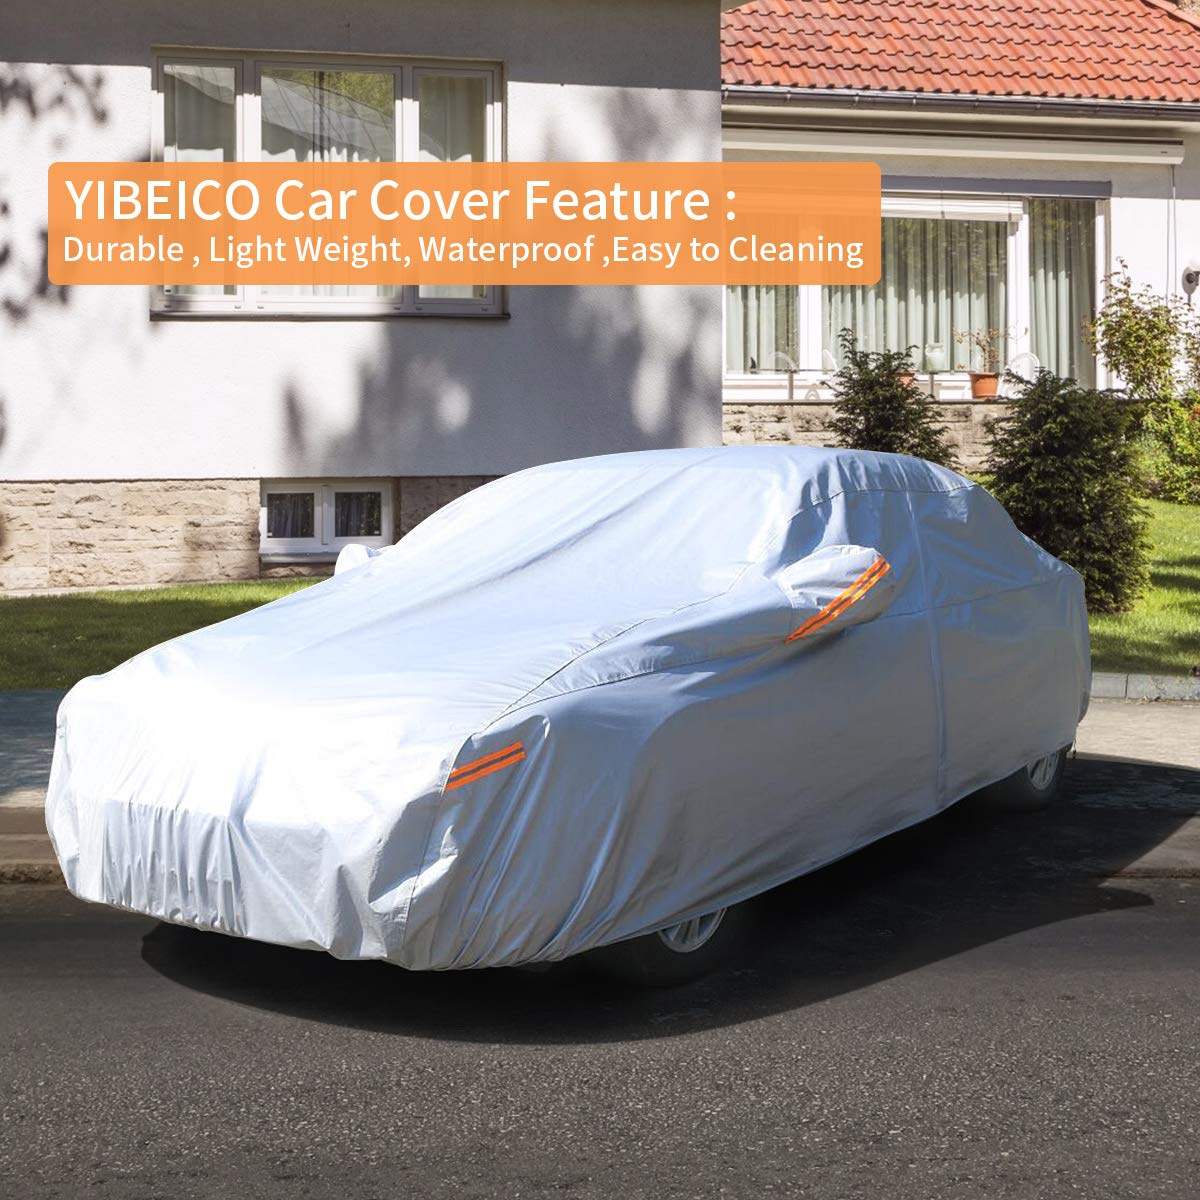 Covercraft C80015 Ready-Fit Technalon Car Cover for Long Bed Truck C80015WC